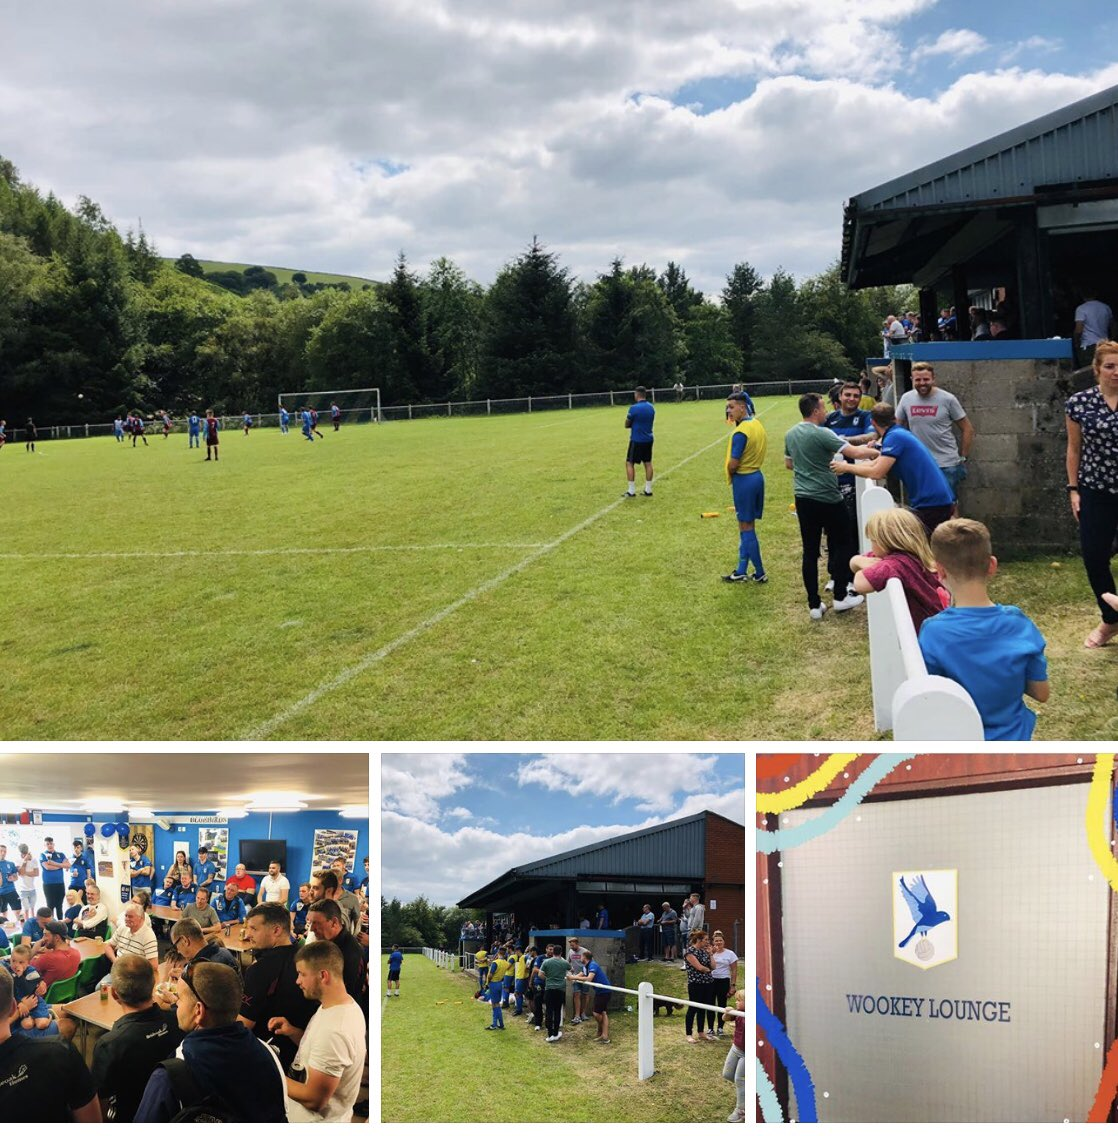 Great Pre-Season Day down The CwmNant. Two Great Games of football ⚽️, Unveiling of  our New Wookey Lounge @ the Clubhouse 💙 & Plenty of People enjoying the Food & Drink available. 🍔🍺 #Thank you to NeuaddWen & Braoadwell for sharing it with us, All the best for the season Guys